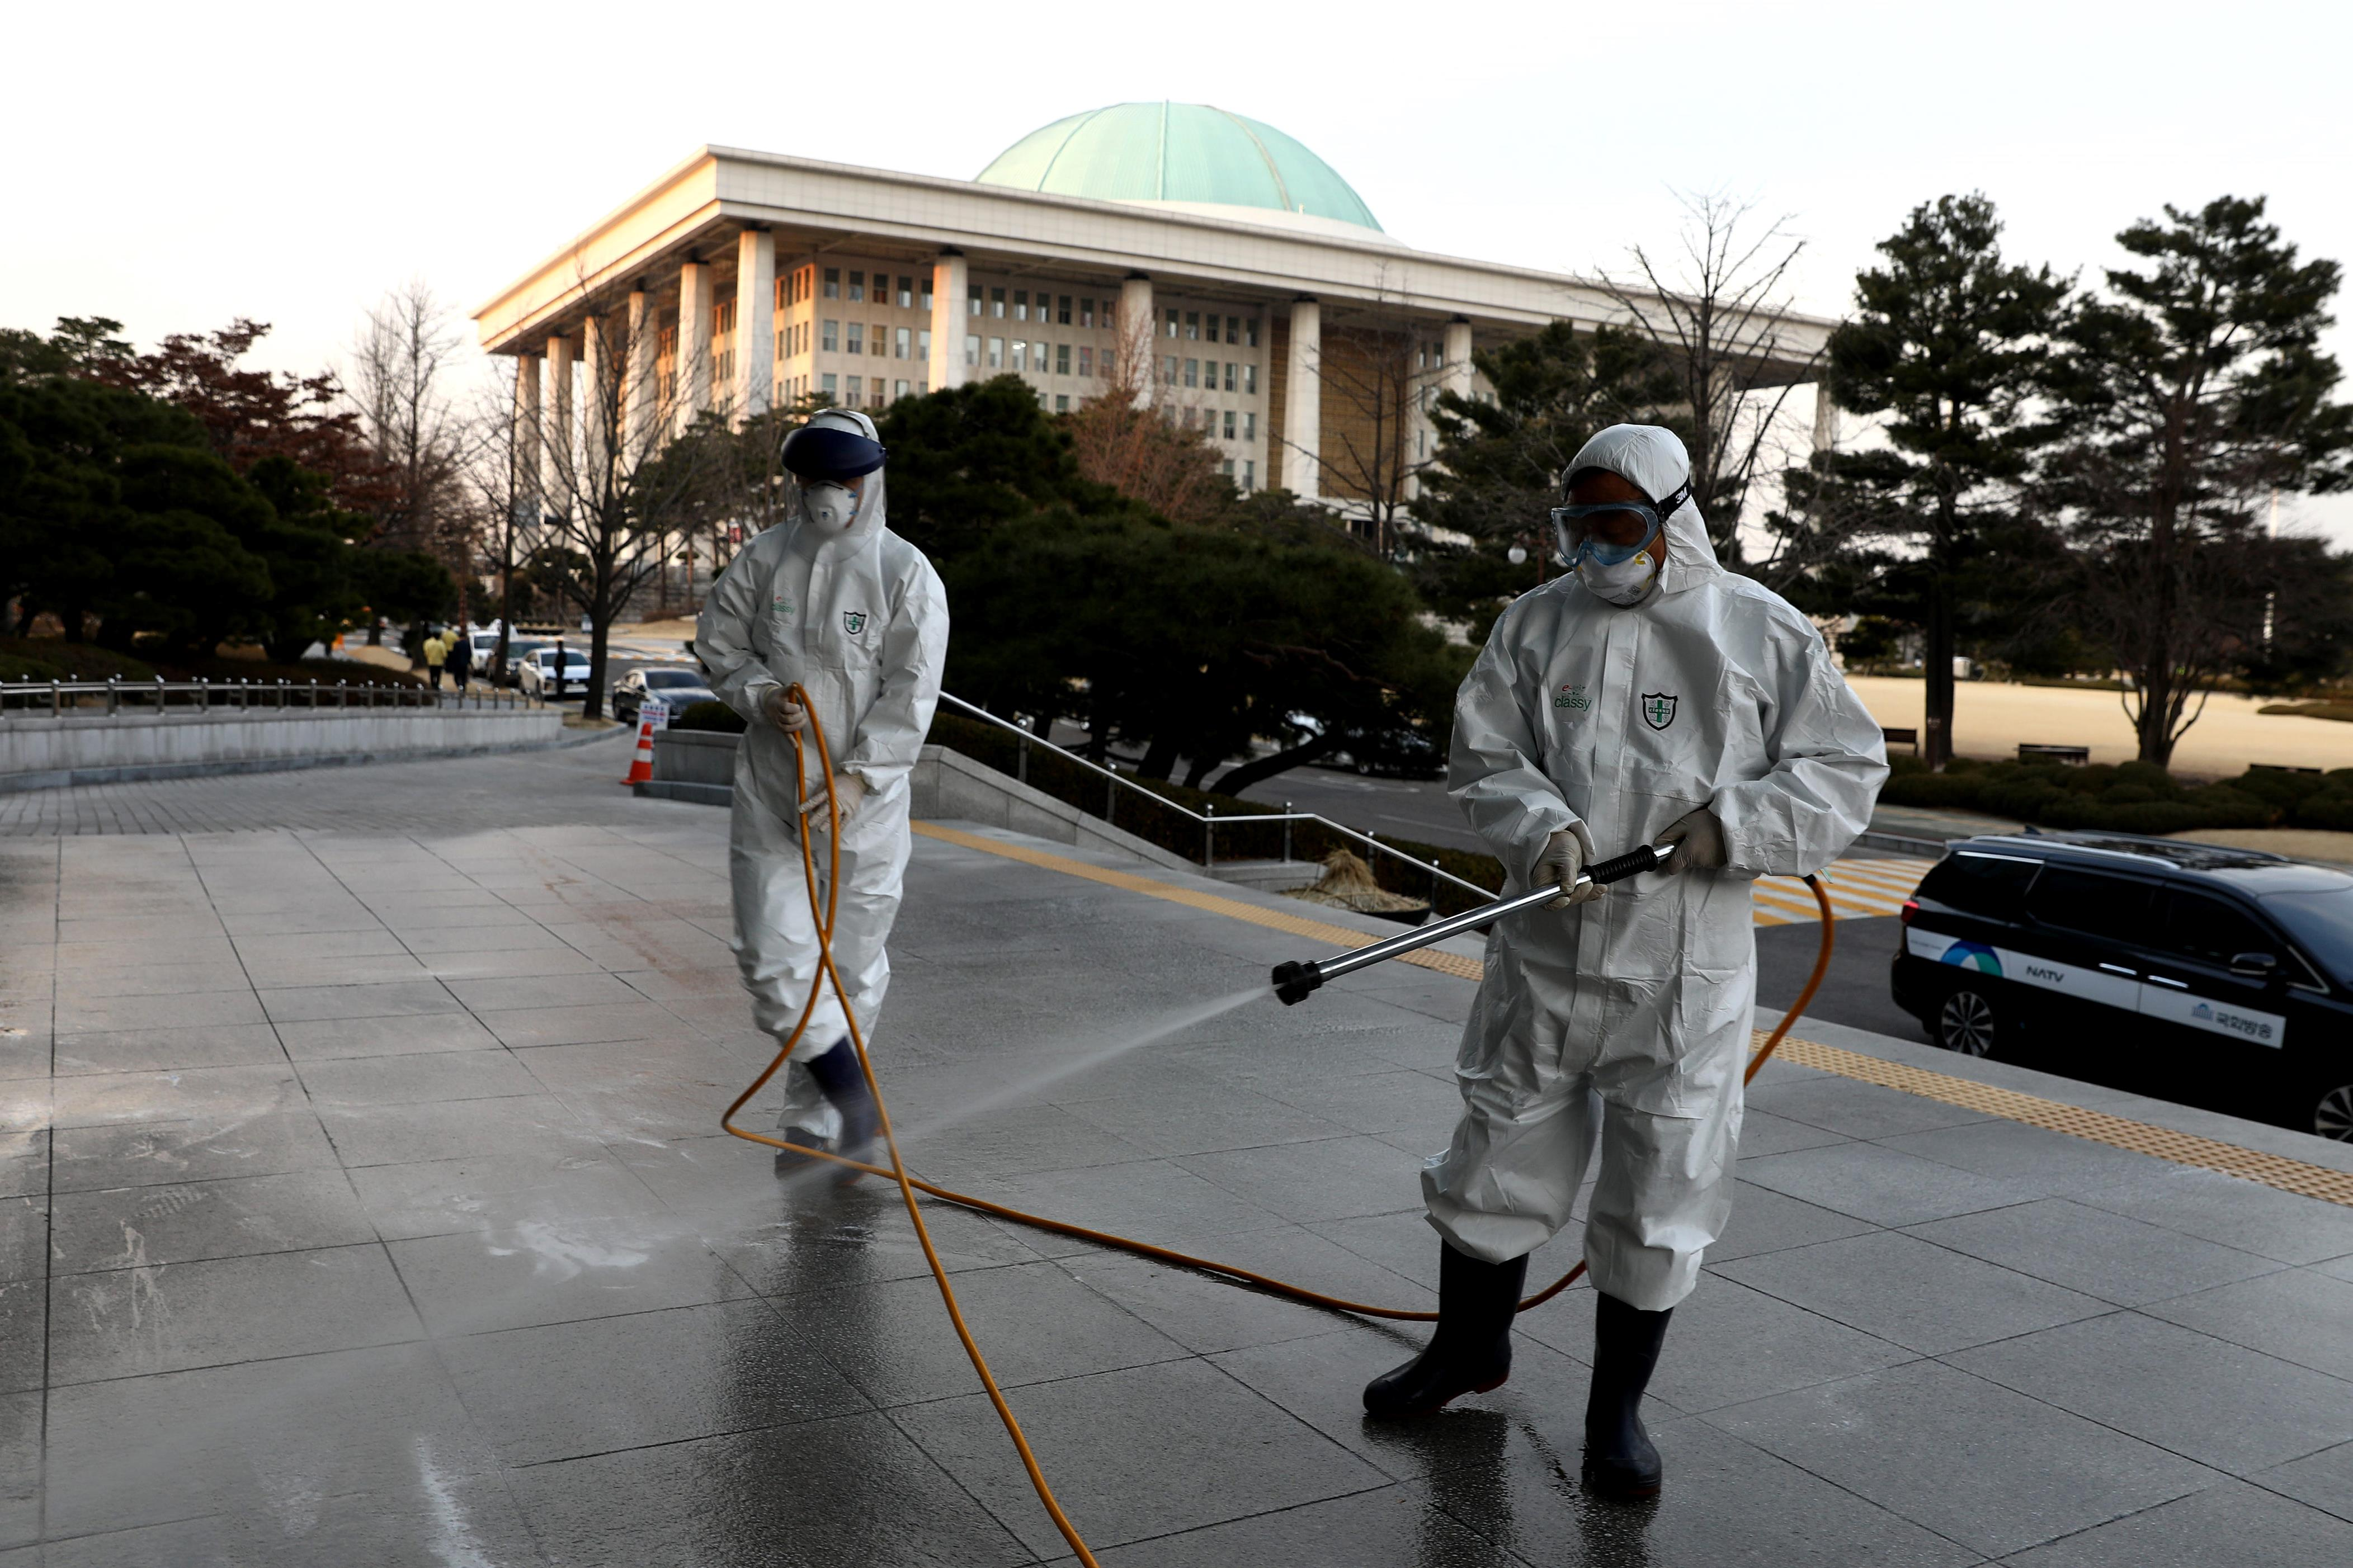 Slide 113 of 113: Disinfection professionals wear protective suits whilst spraying an anti-septic solution against the coronavirus (COVID-19) at a National Assembly on Feb. 24, 2020 in Seoul, South Korea.